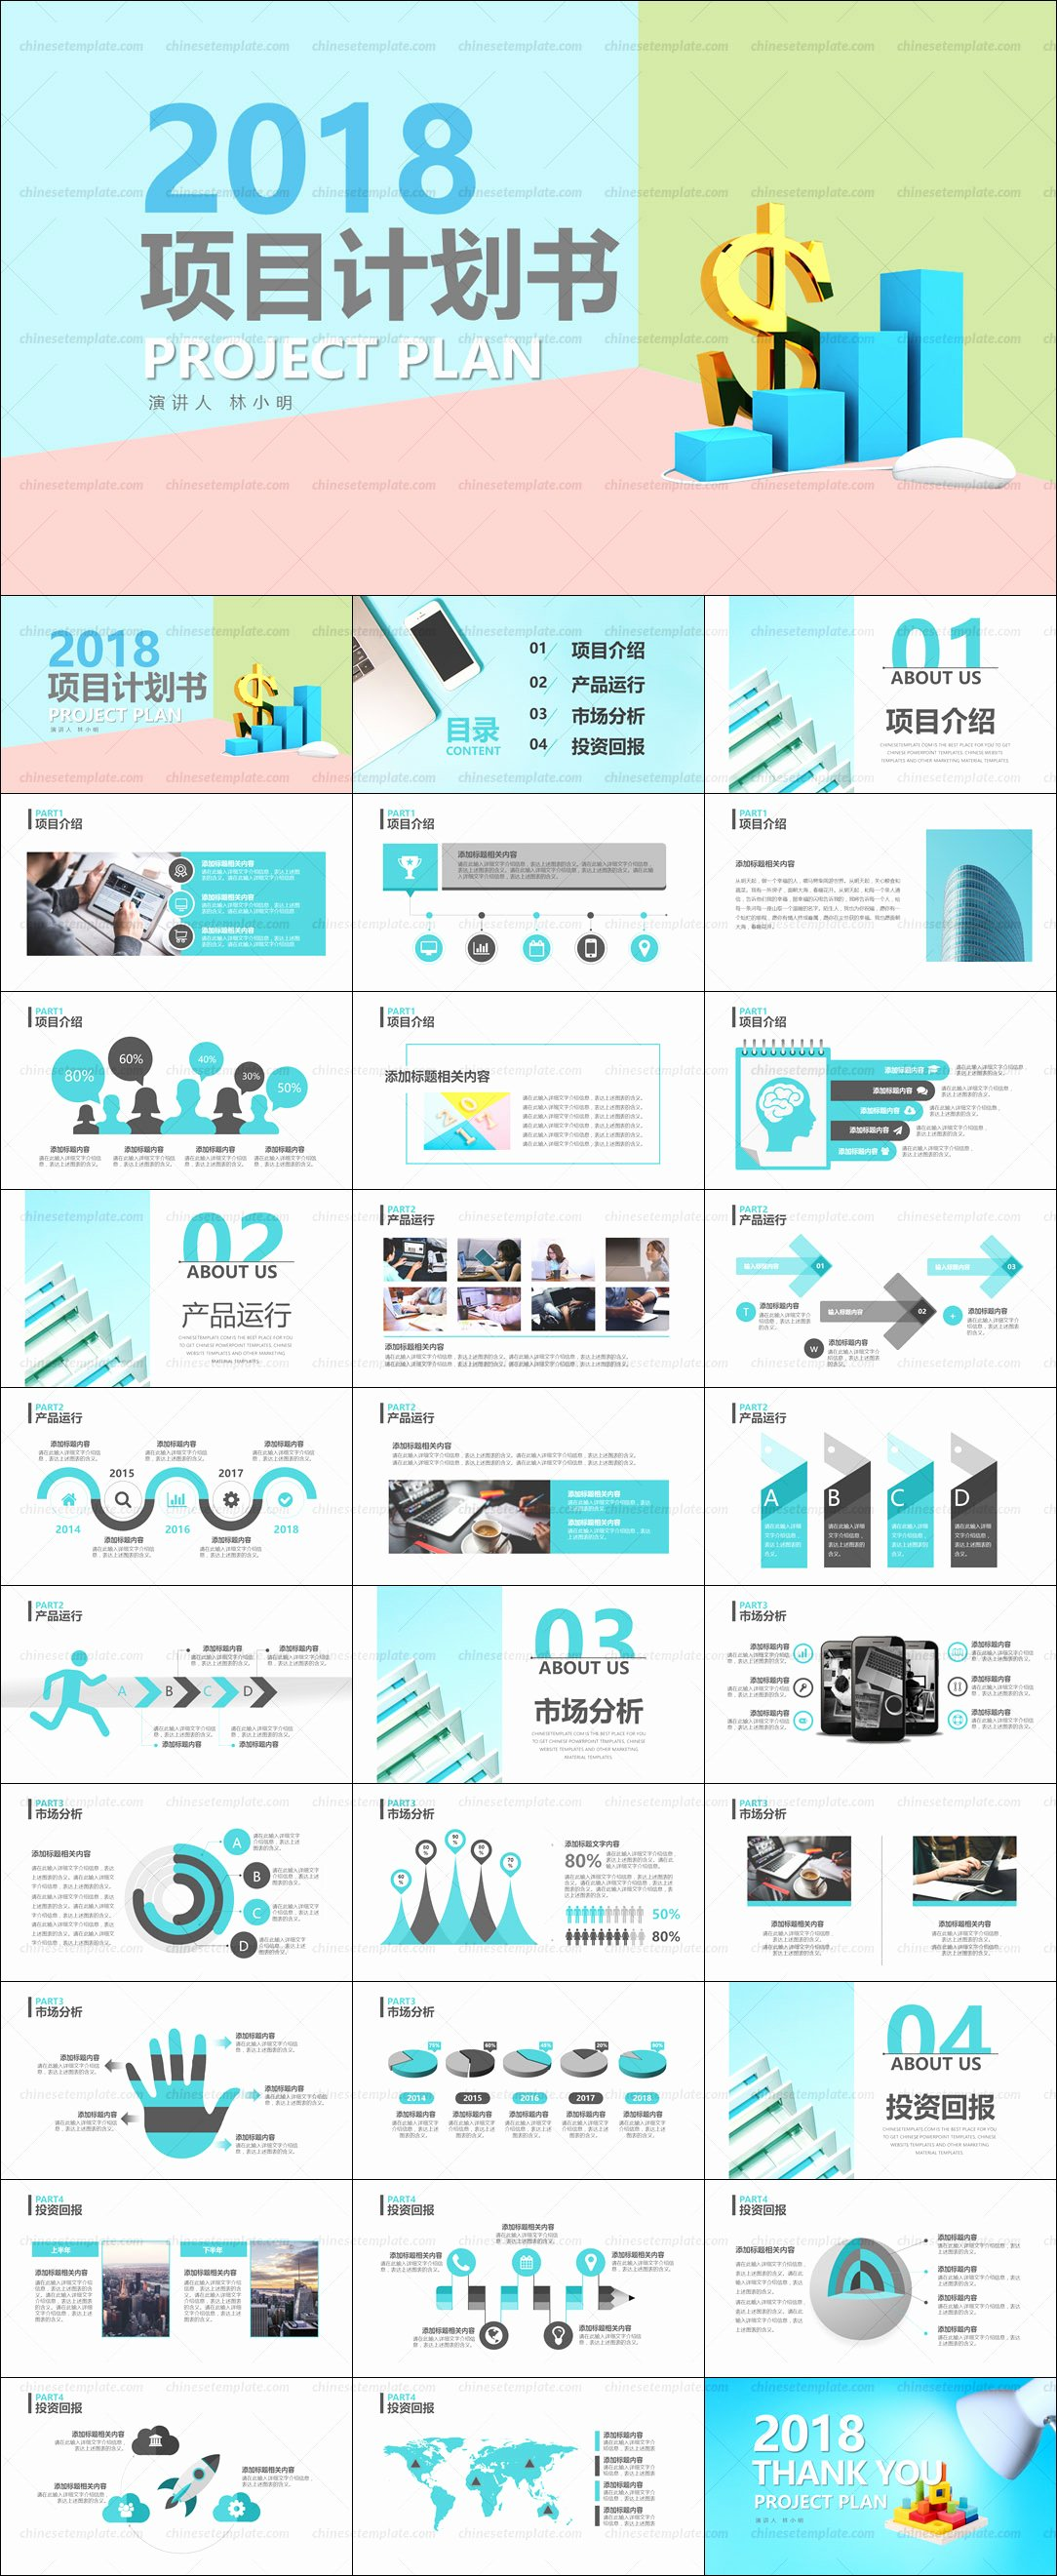 Project Plan Powerpoint Template Fresh Chinese Project Plan Powerpoint Template – Chinese